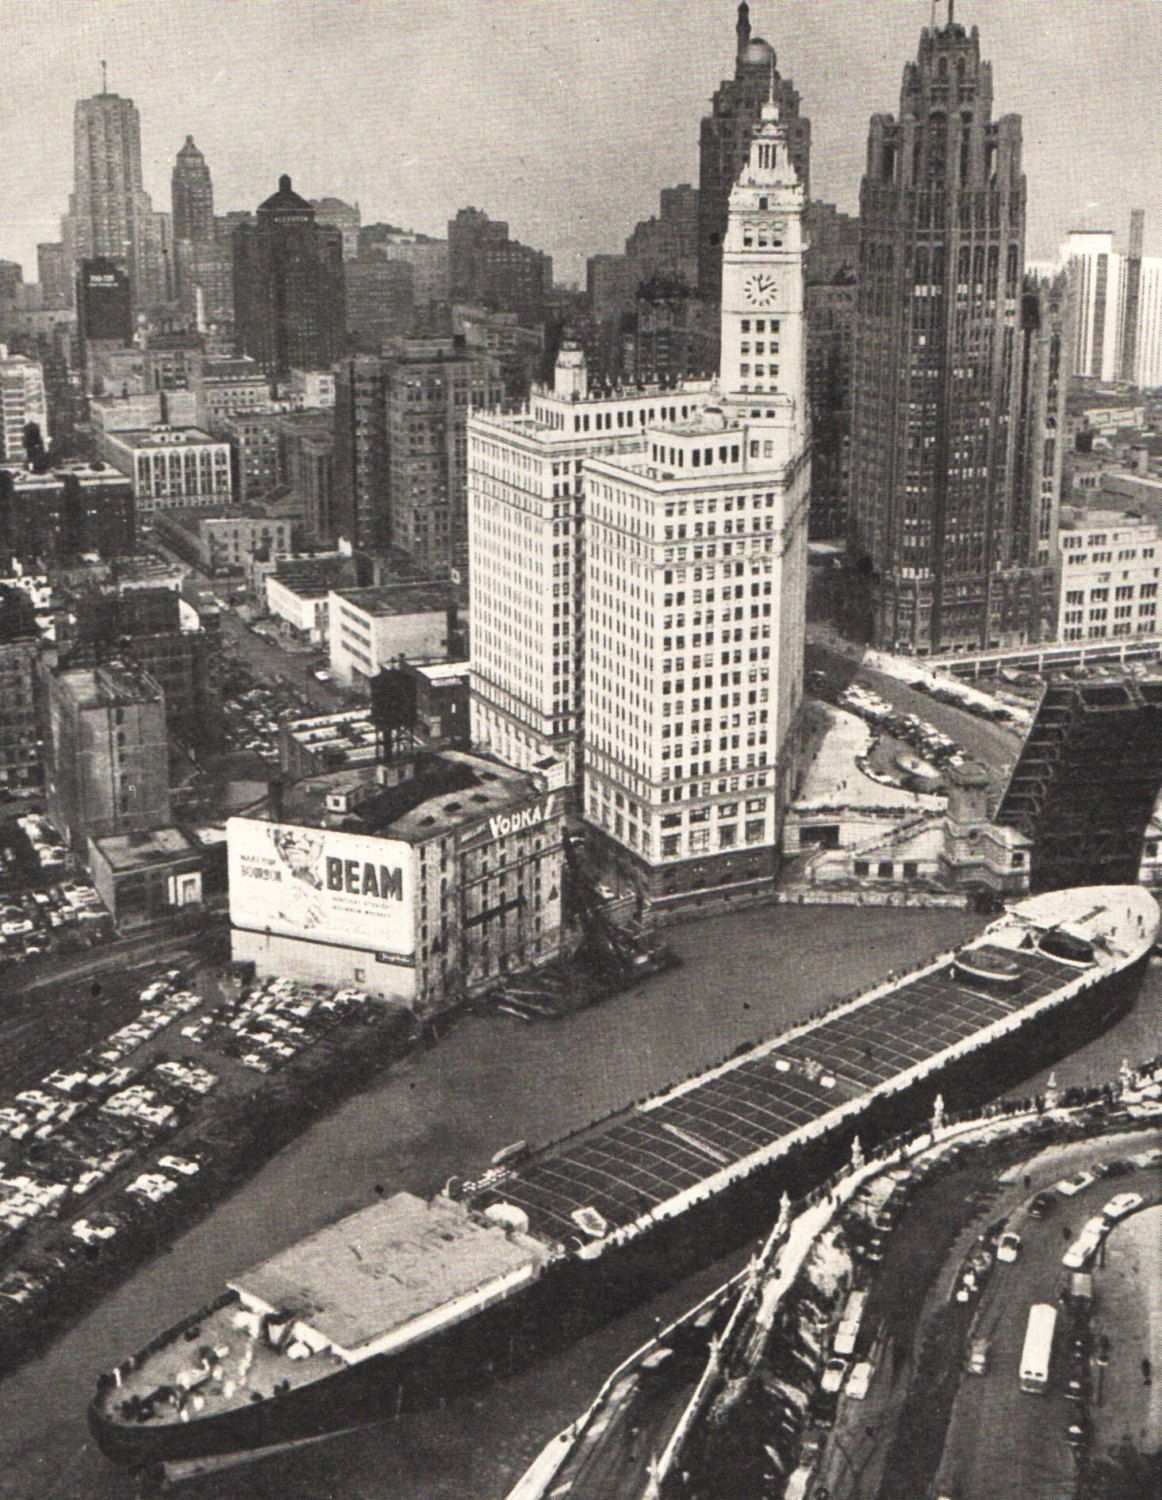 Vintage Chicago Photo Michigan Boulevard Bridge 1950s Chicago Vintage Photograph Chicago Photos Chicago City Chicago History